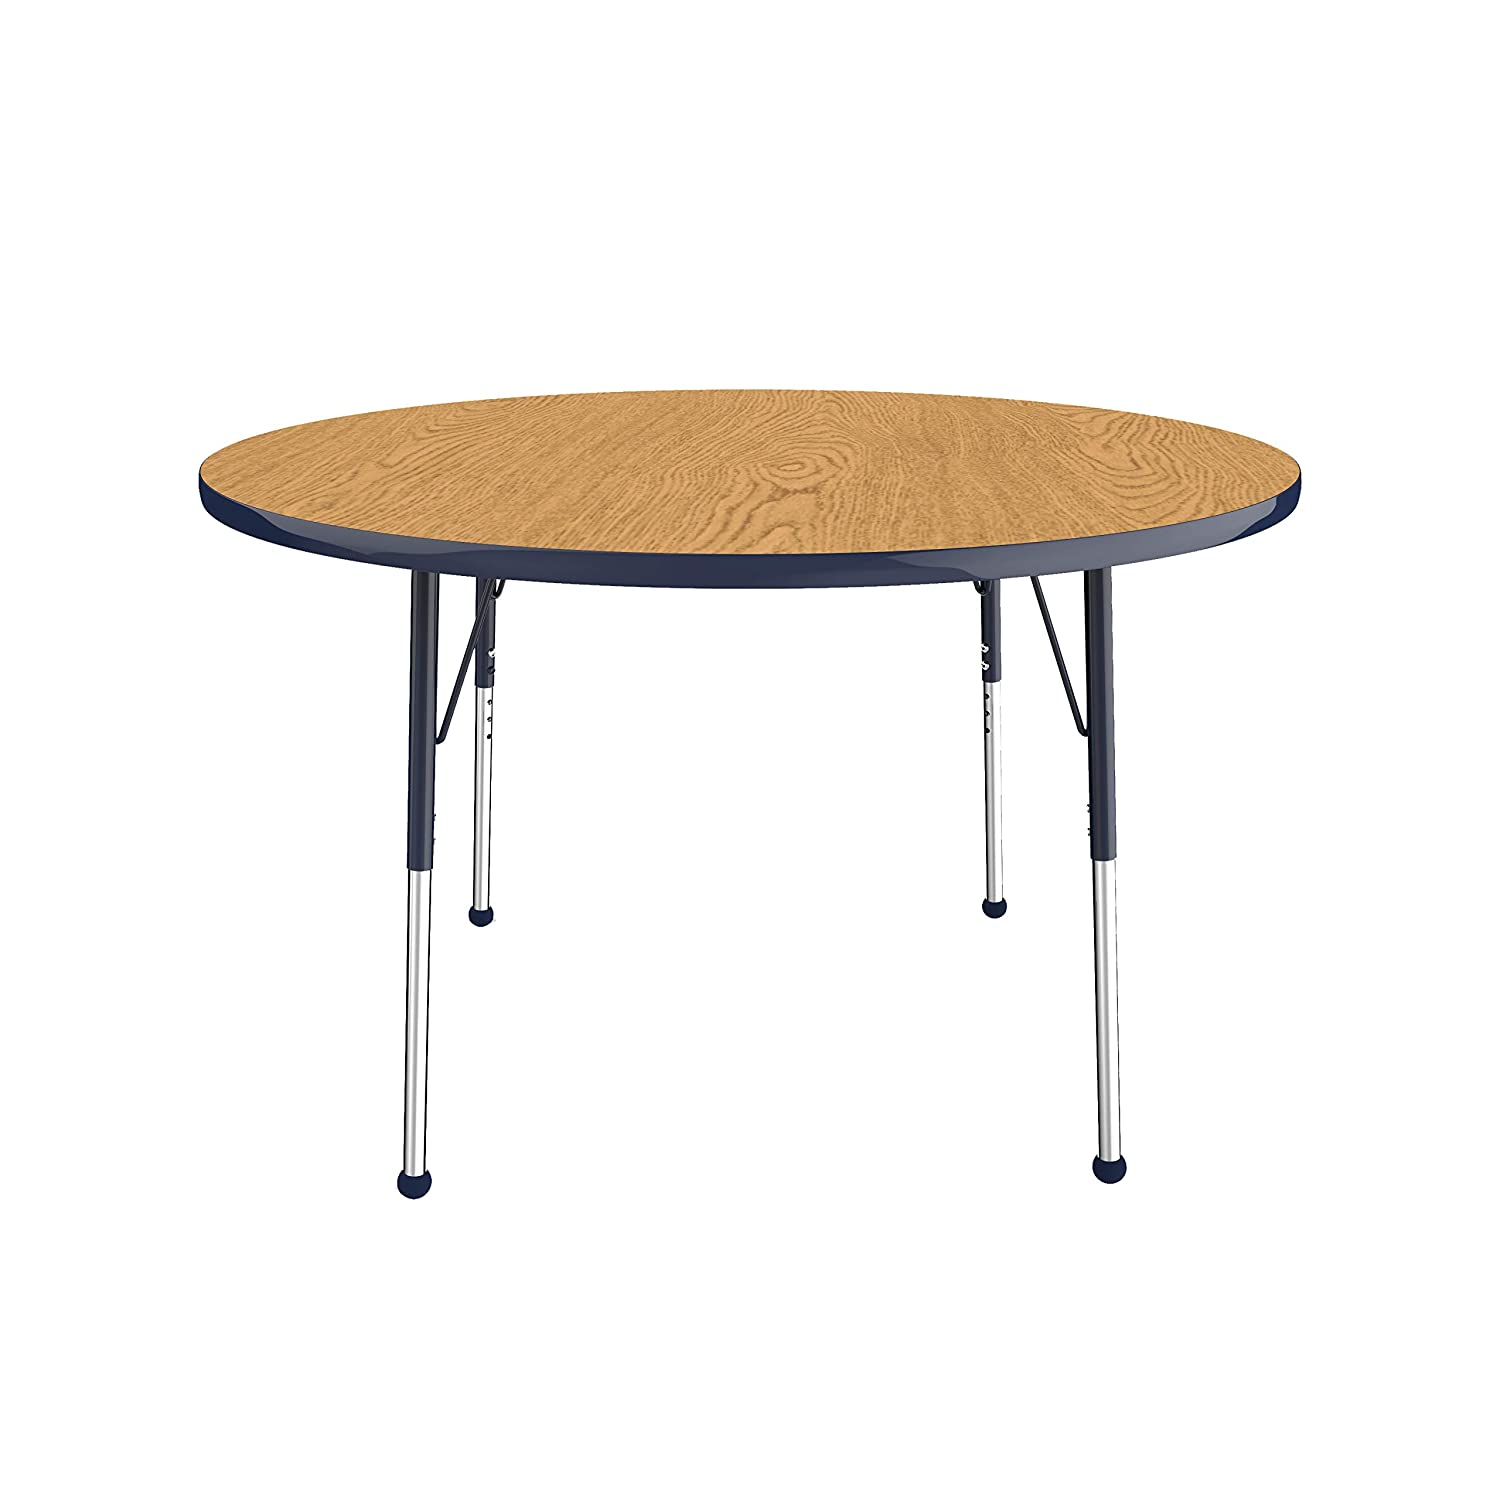 Maple Top and Black Edge Adjustable Height 19-30 inches Standard Legs with Swivel Glides 60 inch FDP Round Activity School and Office Table